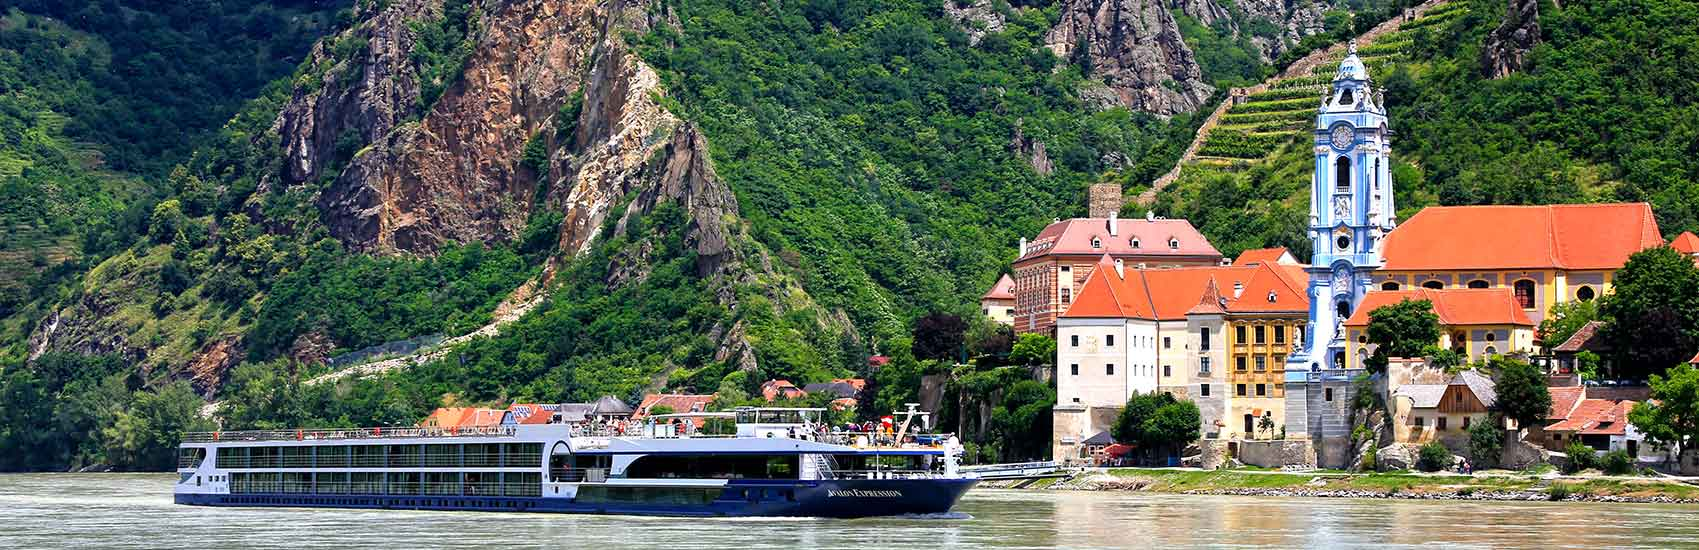 Aubaine en direct d'Avalon Waterways